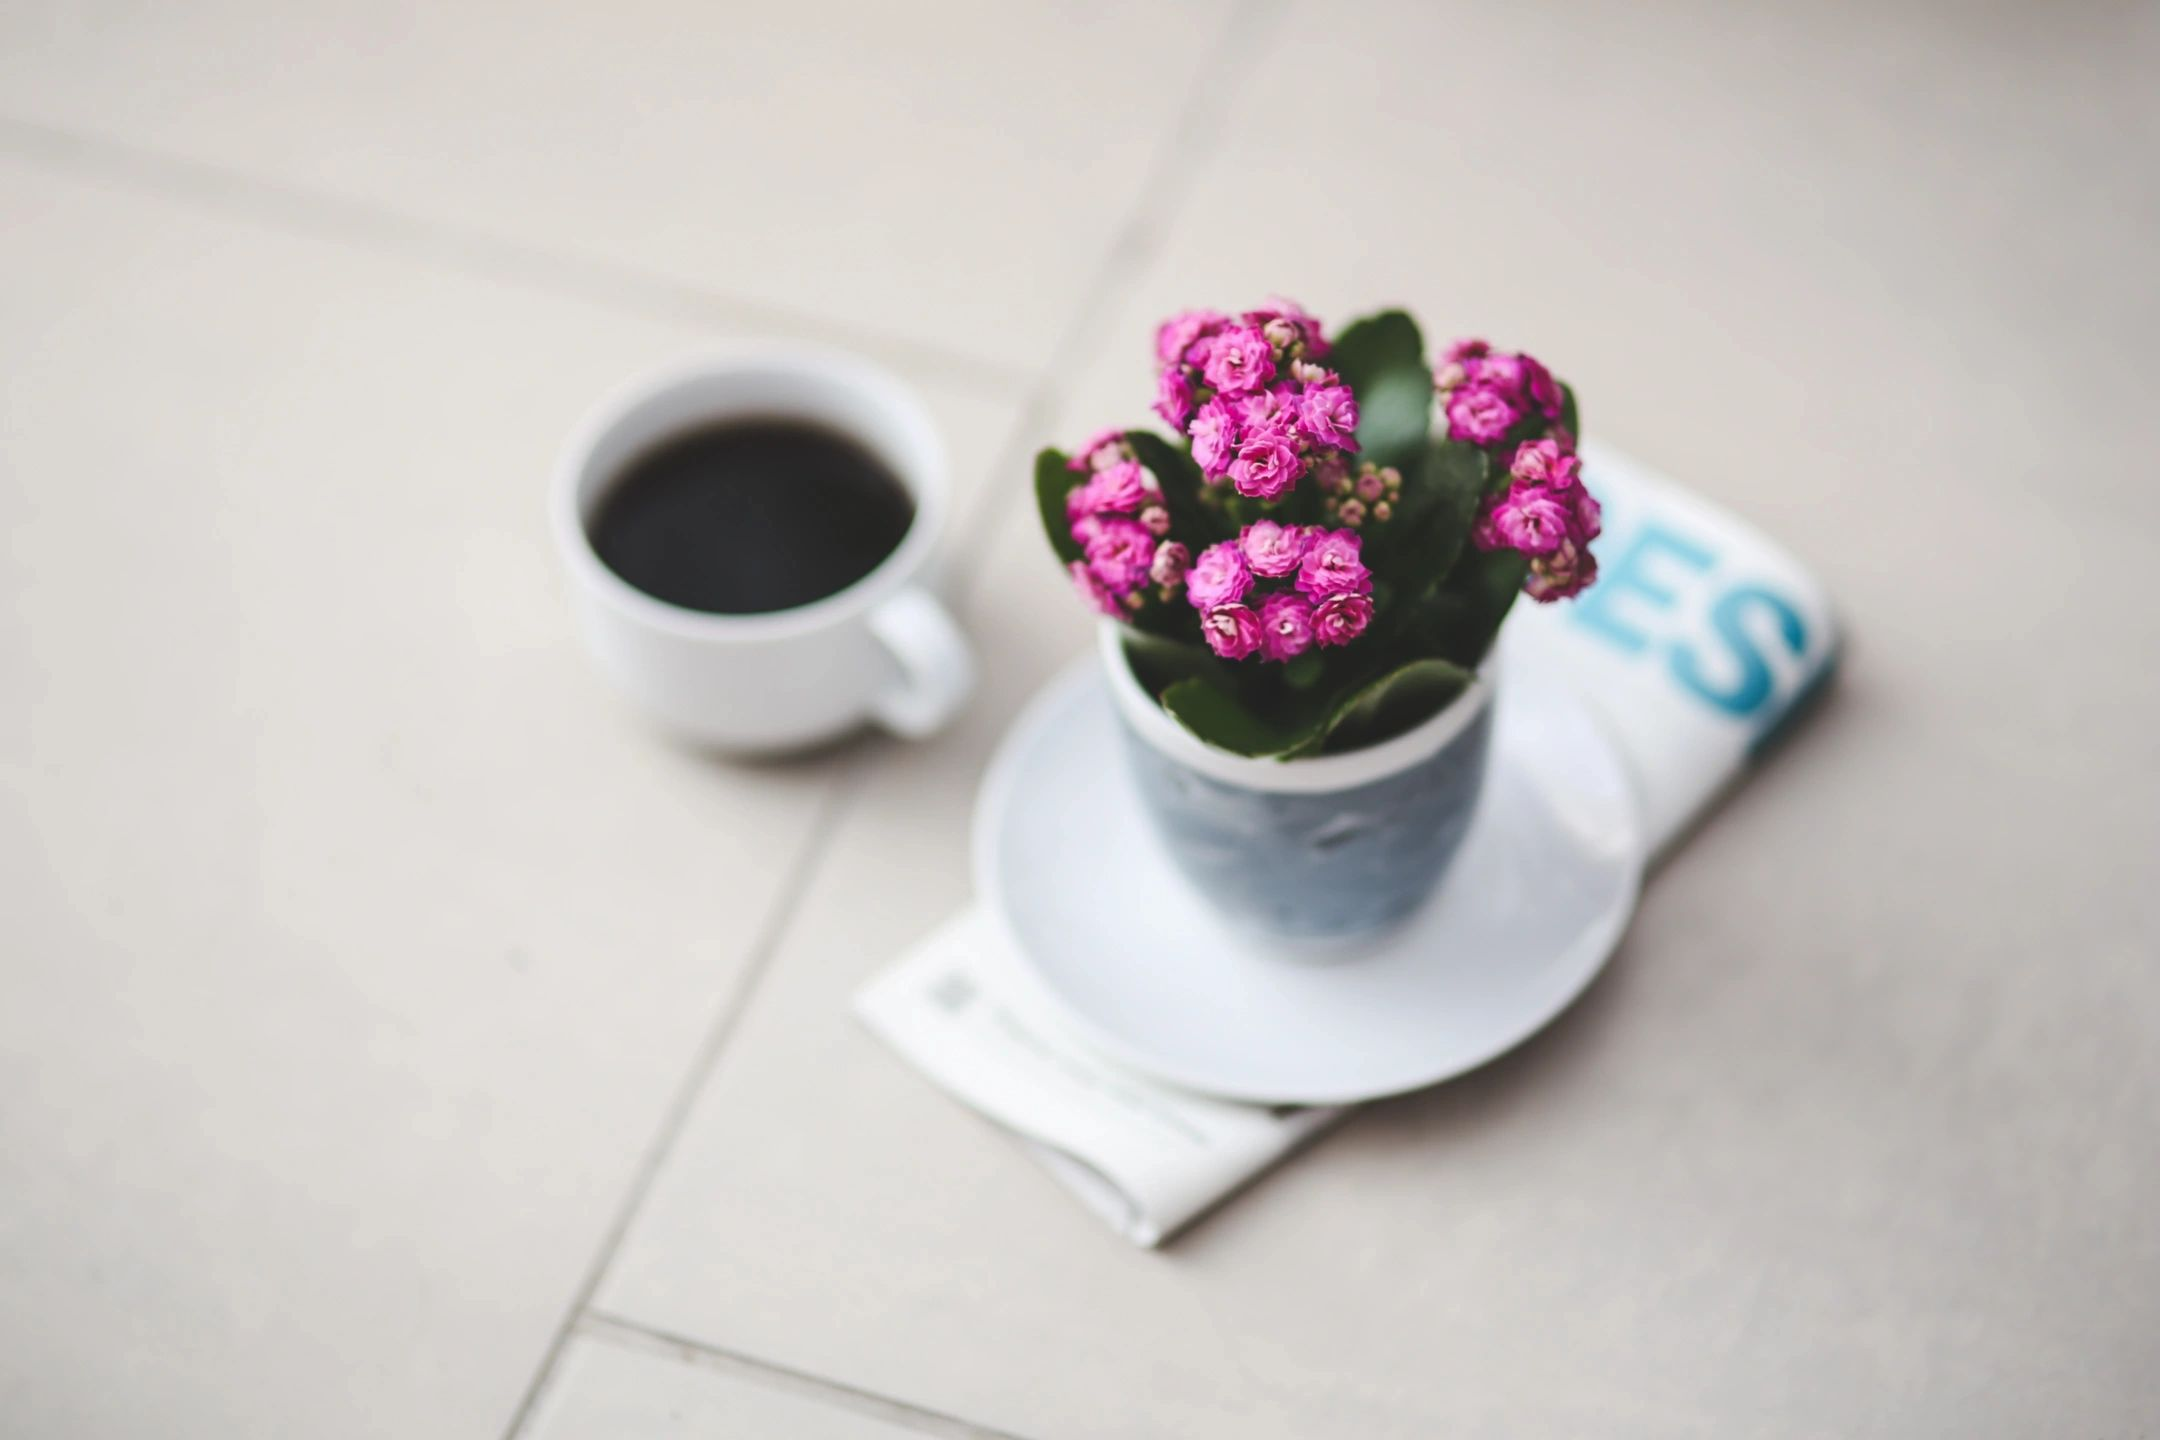 black coffee and pink flower pot